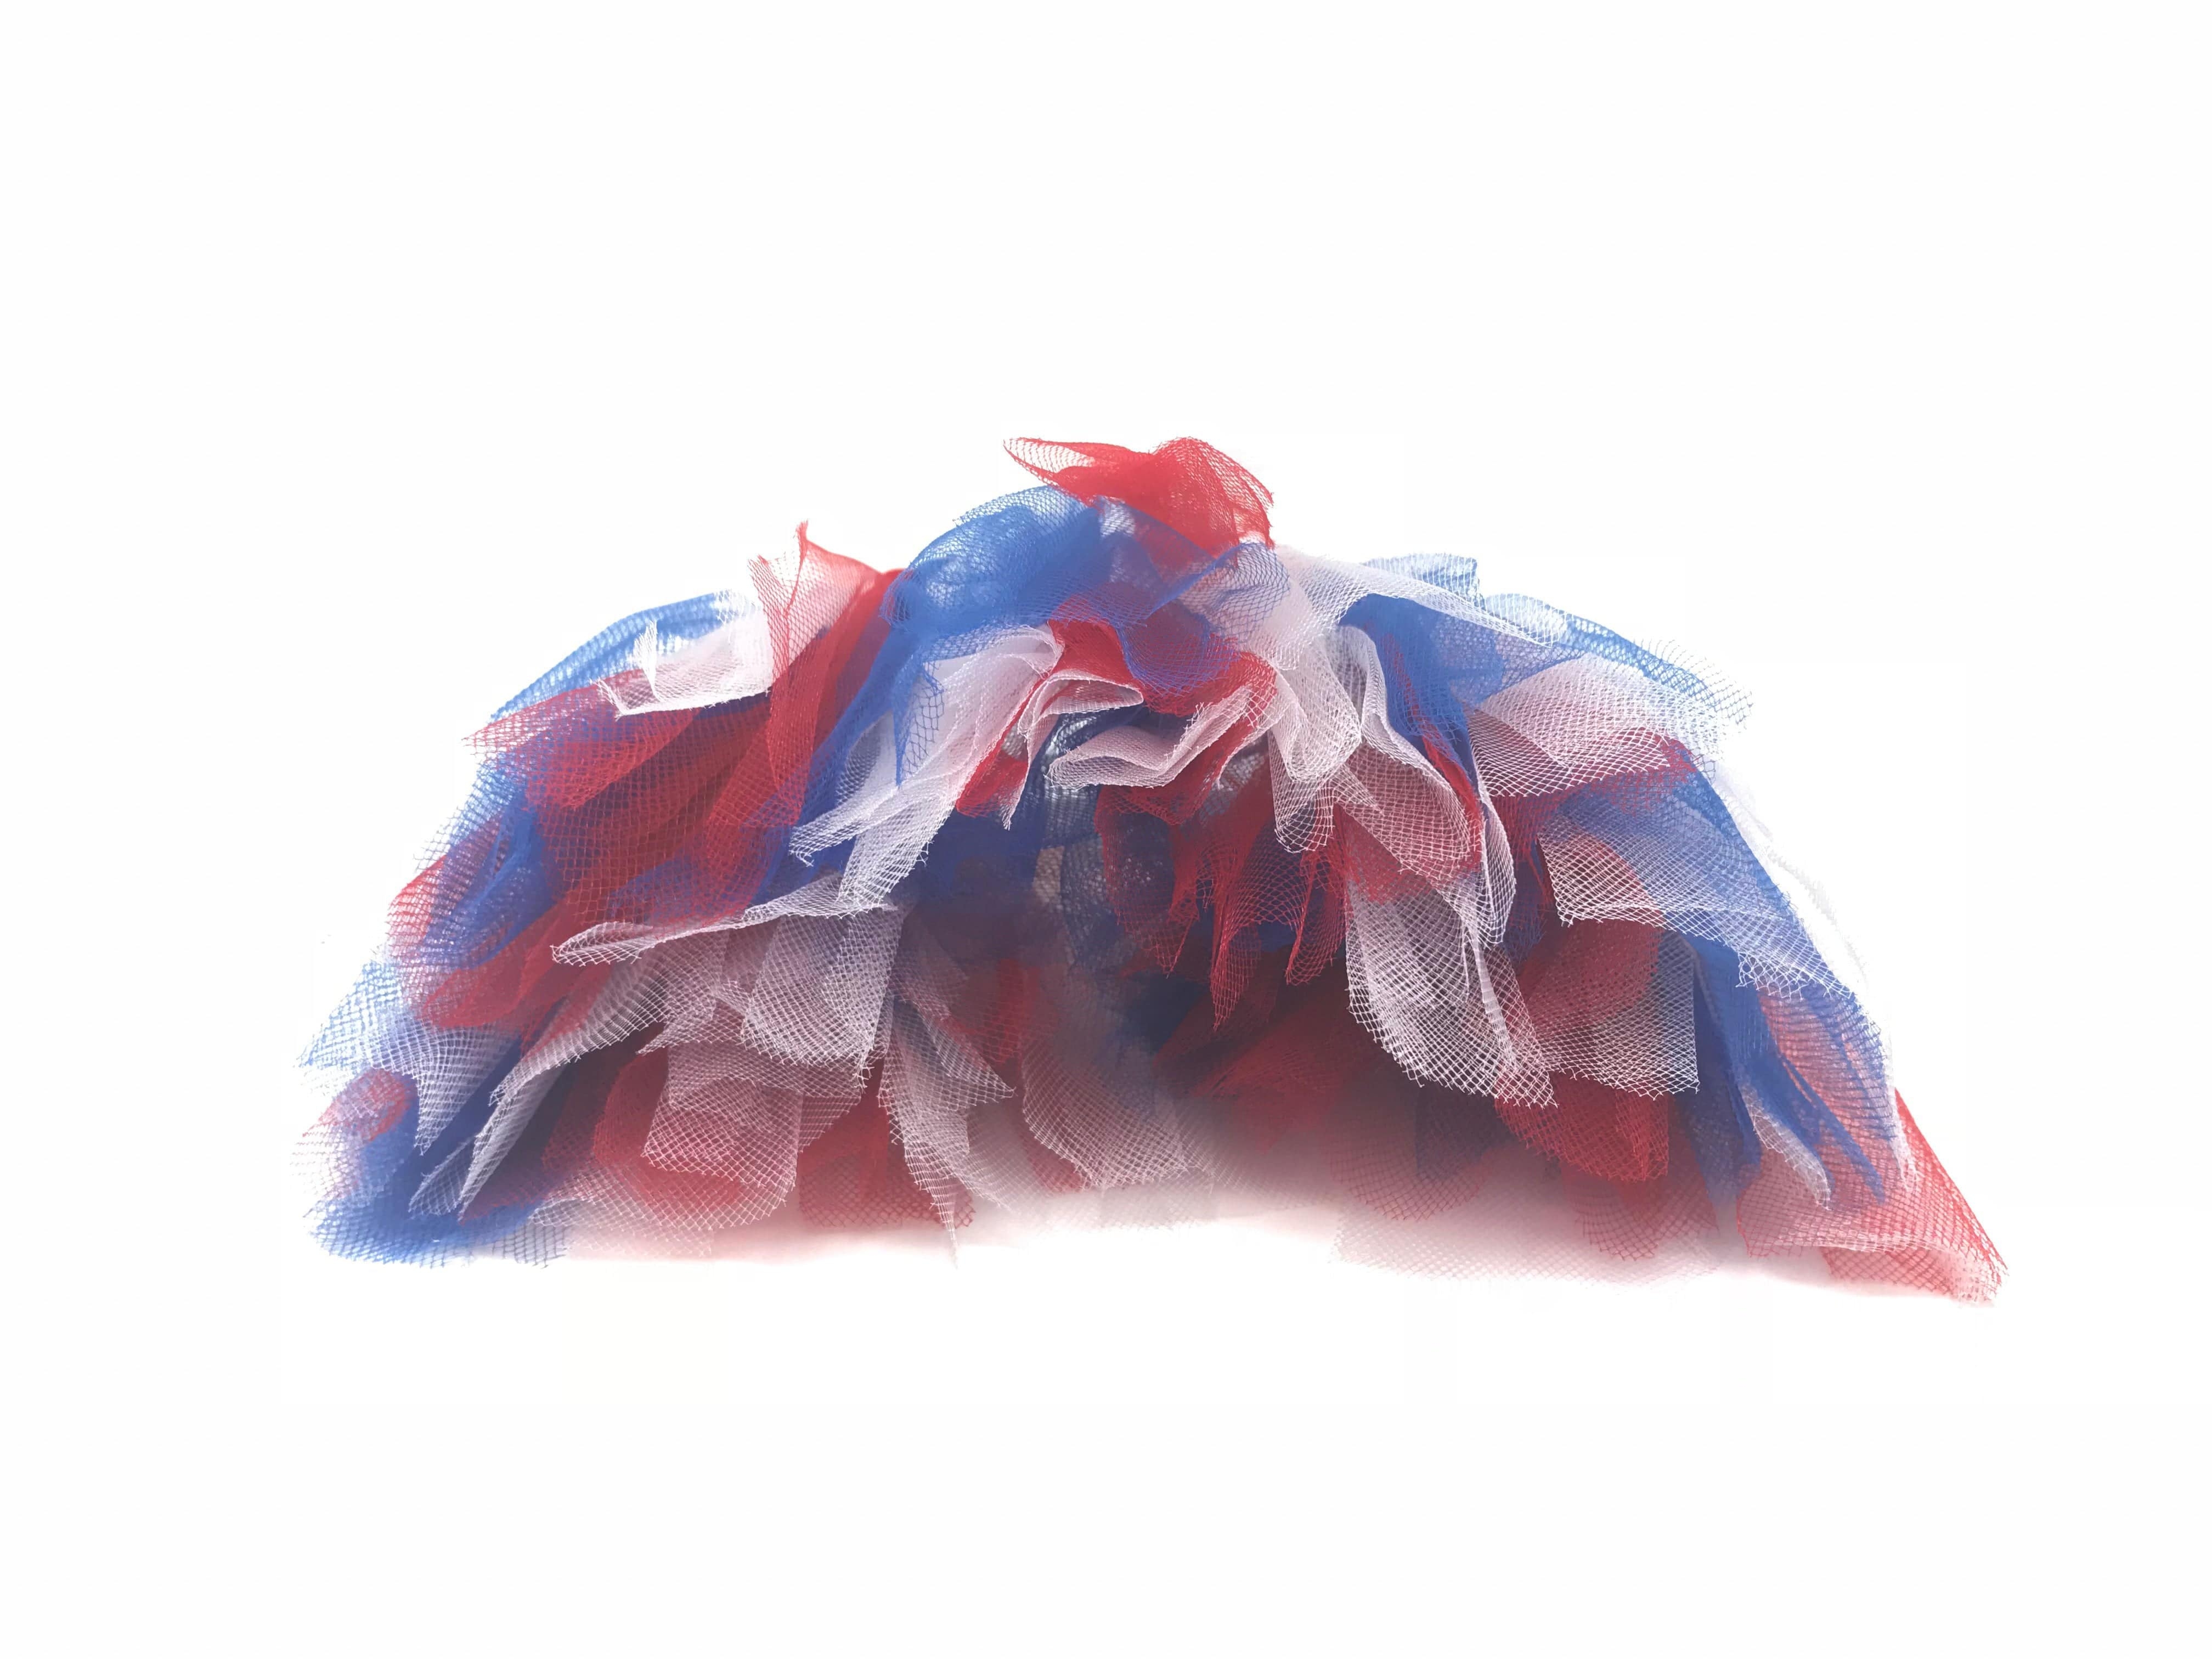 4th of july, independence day tutu skirt for dogs cats pets miniature horses animals. pet skirt. dog skirt. dog outfit. dog costume, american flag dog tutu, outdoor tutu for dogs, tutu run dogs, independence day tutu, 4th of july tutu